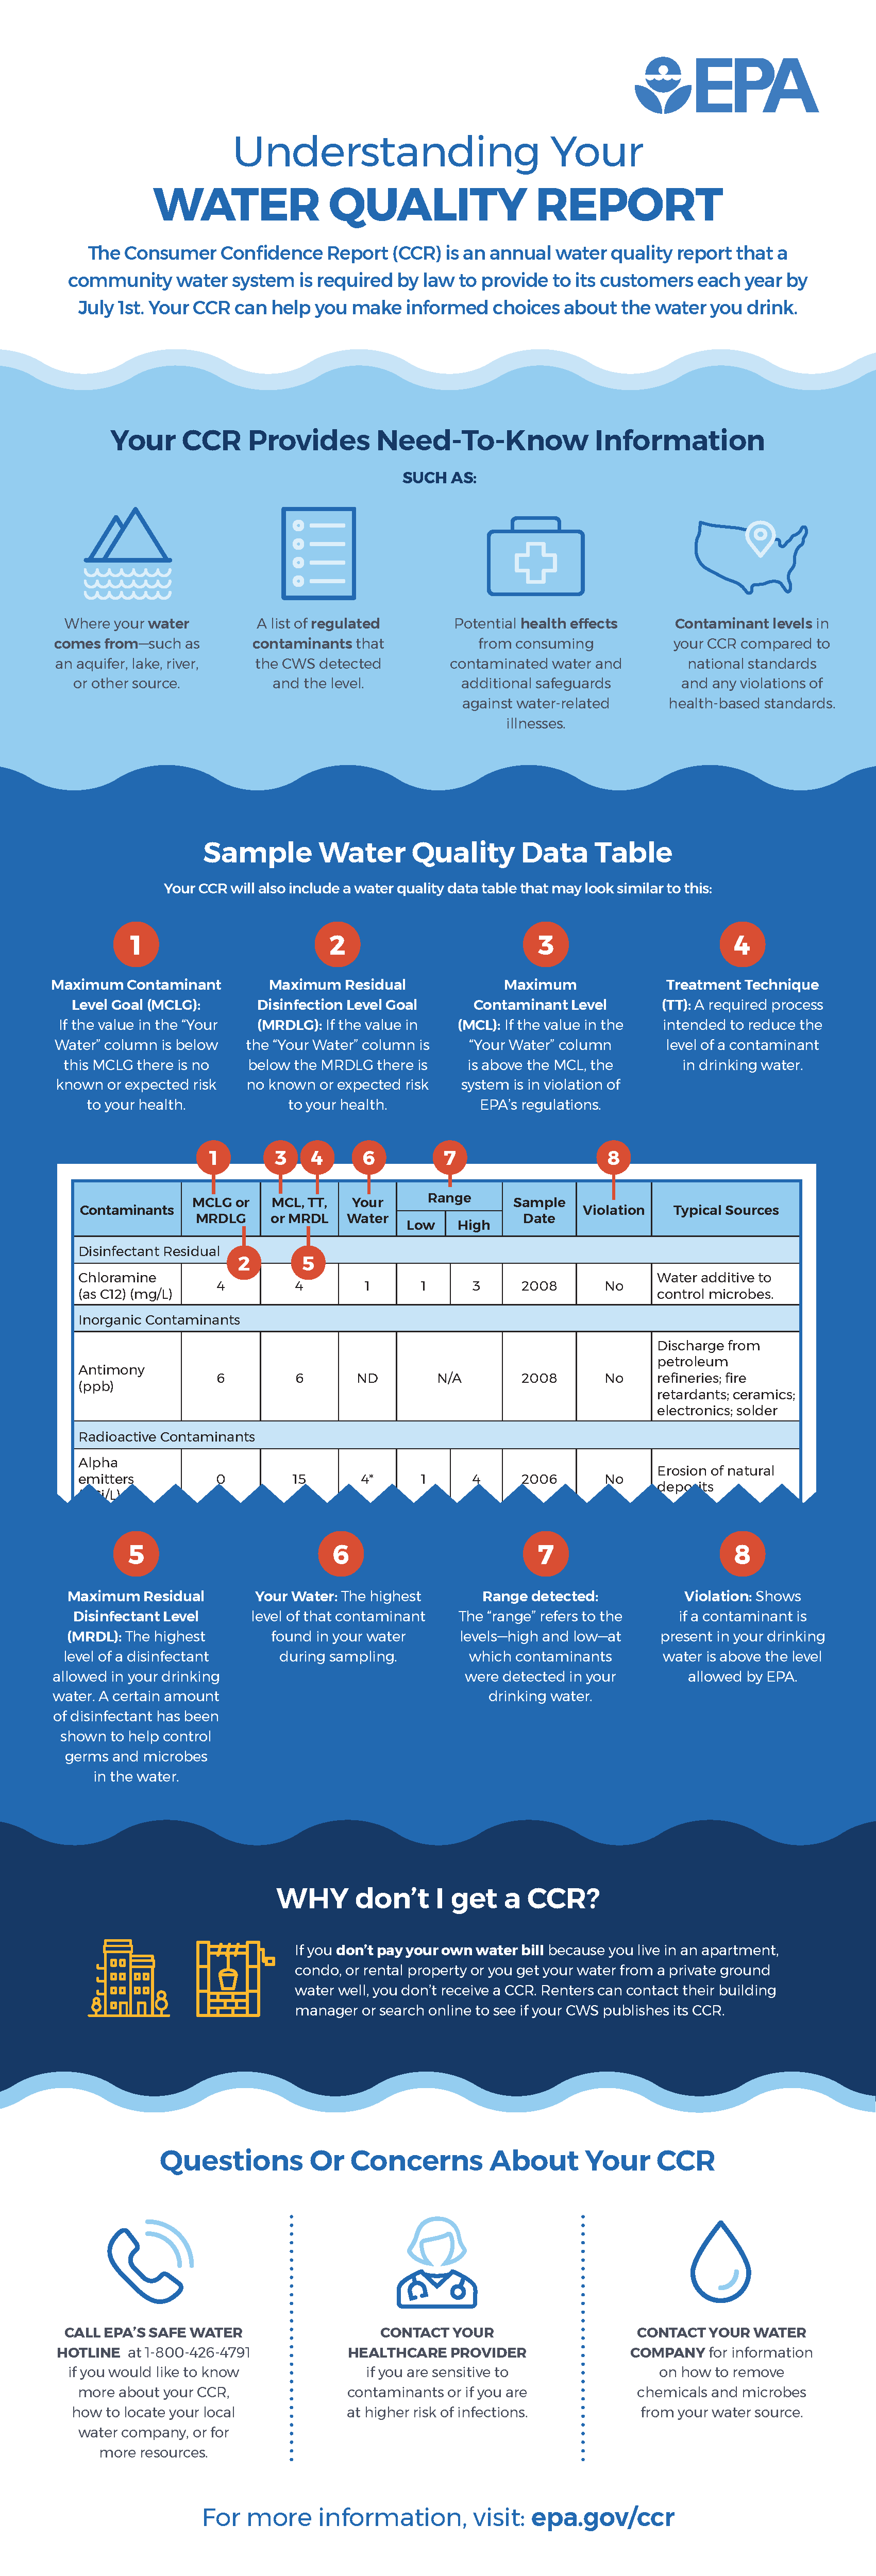 Understanding Your Water Quality Report Infographic from the EPA